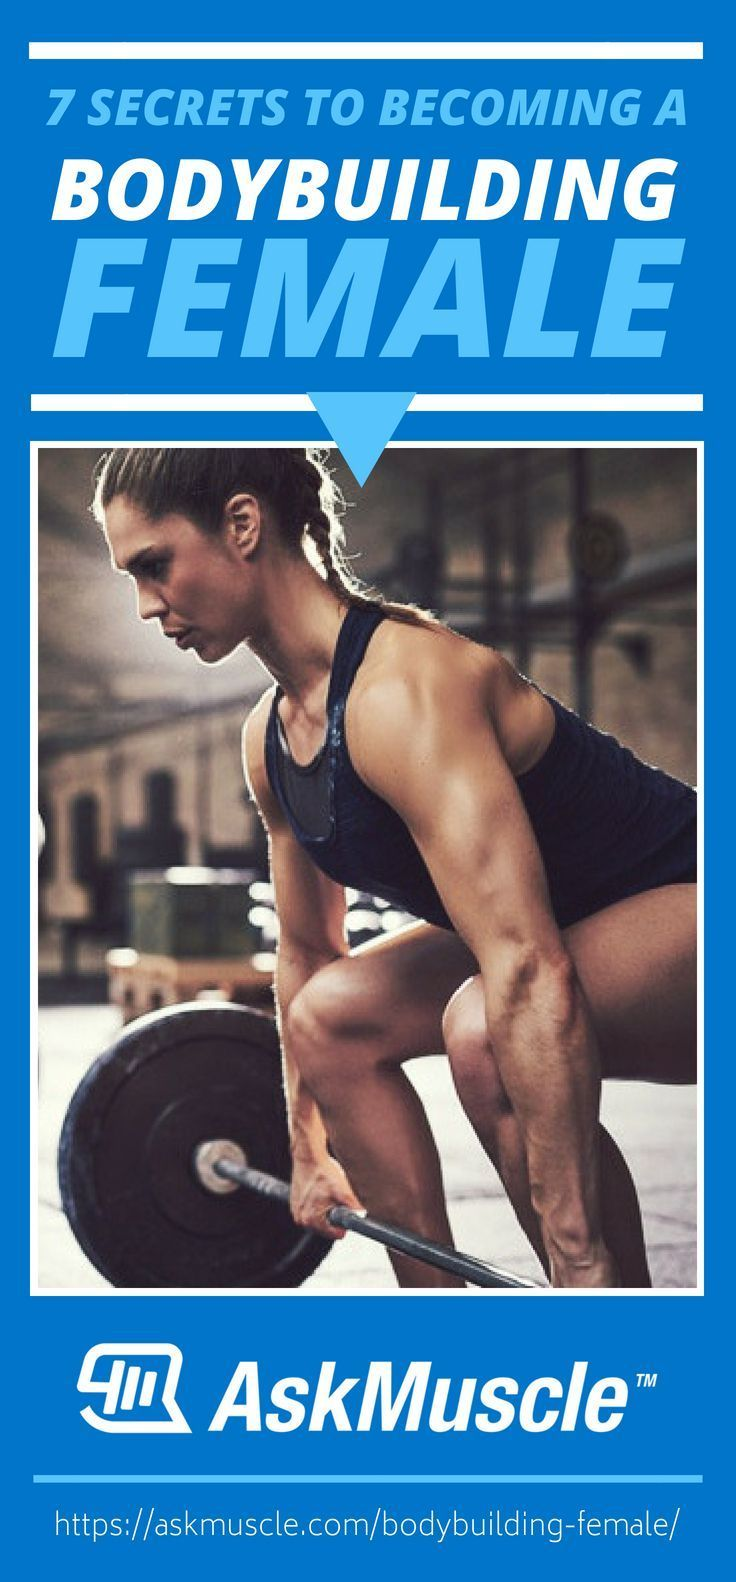 7 Secrets To Becoming A Bodybuilding Female Becoming a bodybuilding female is no…